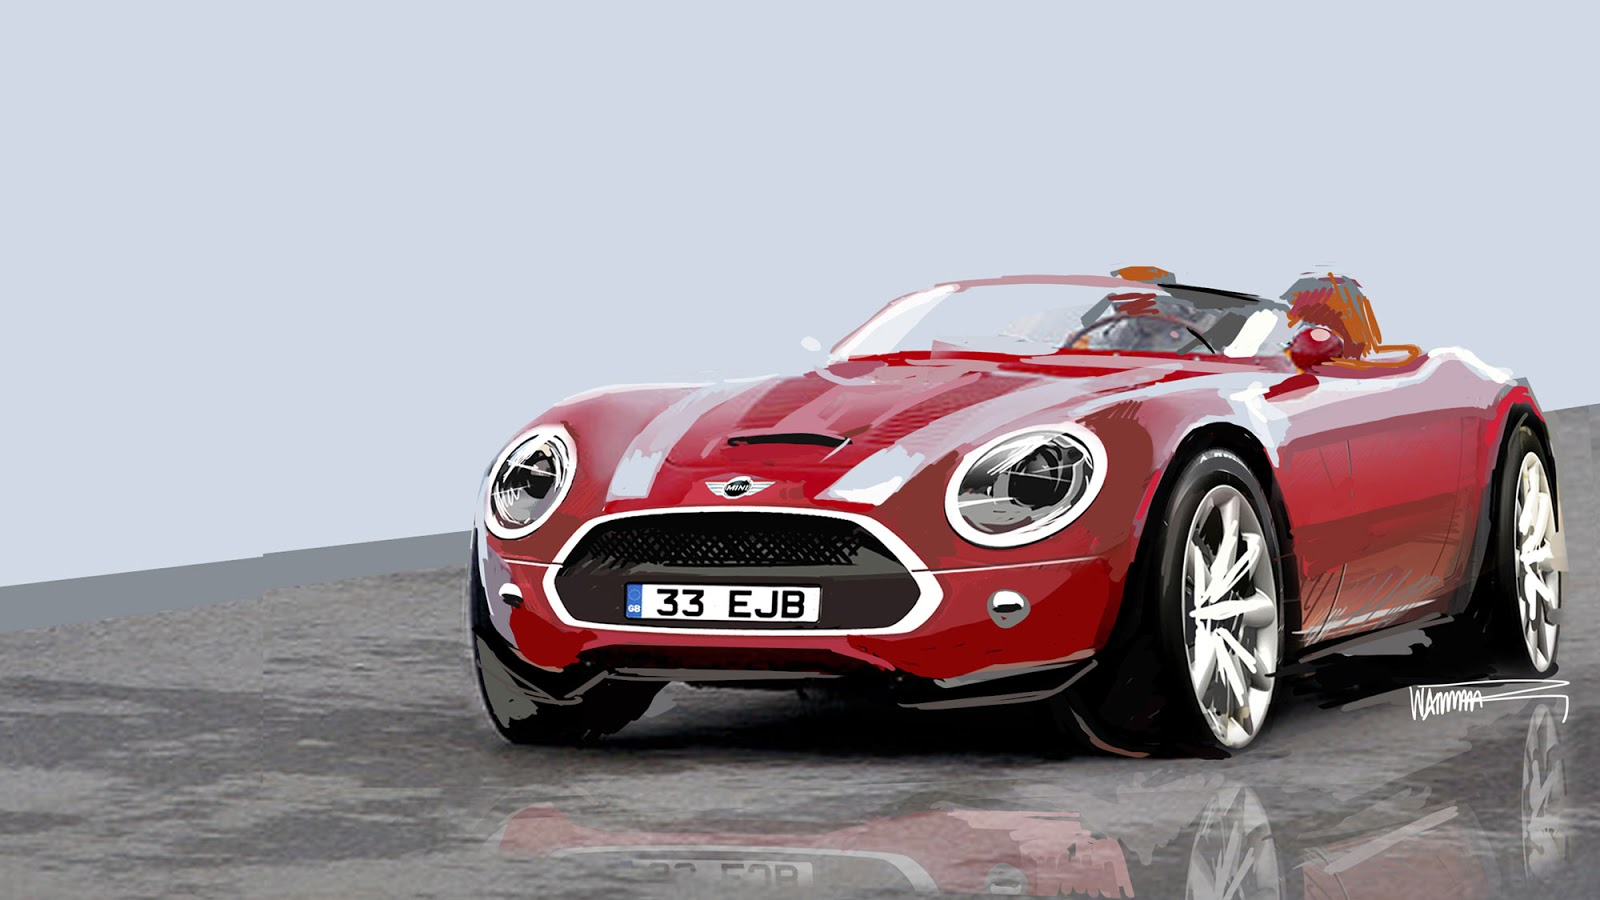 Mini Vision Superleggera front view photoshop by Anders Warming